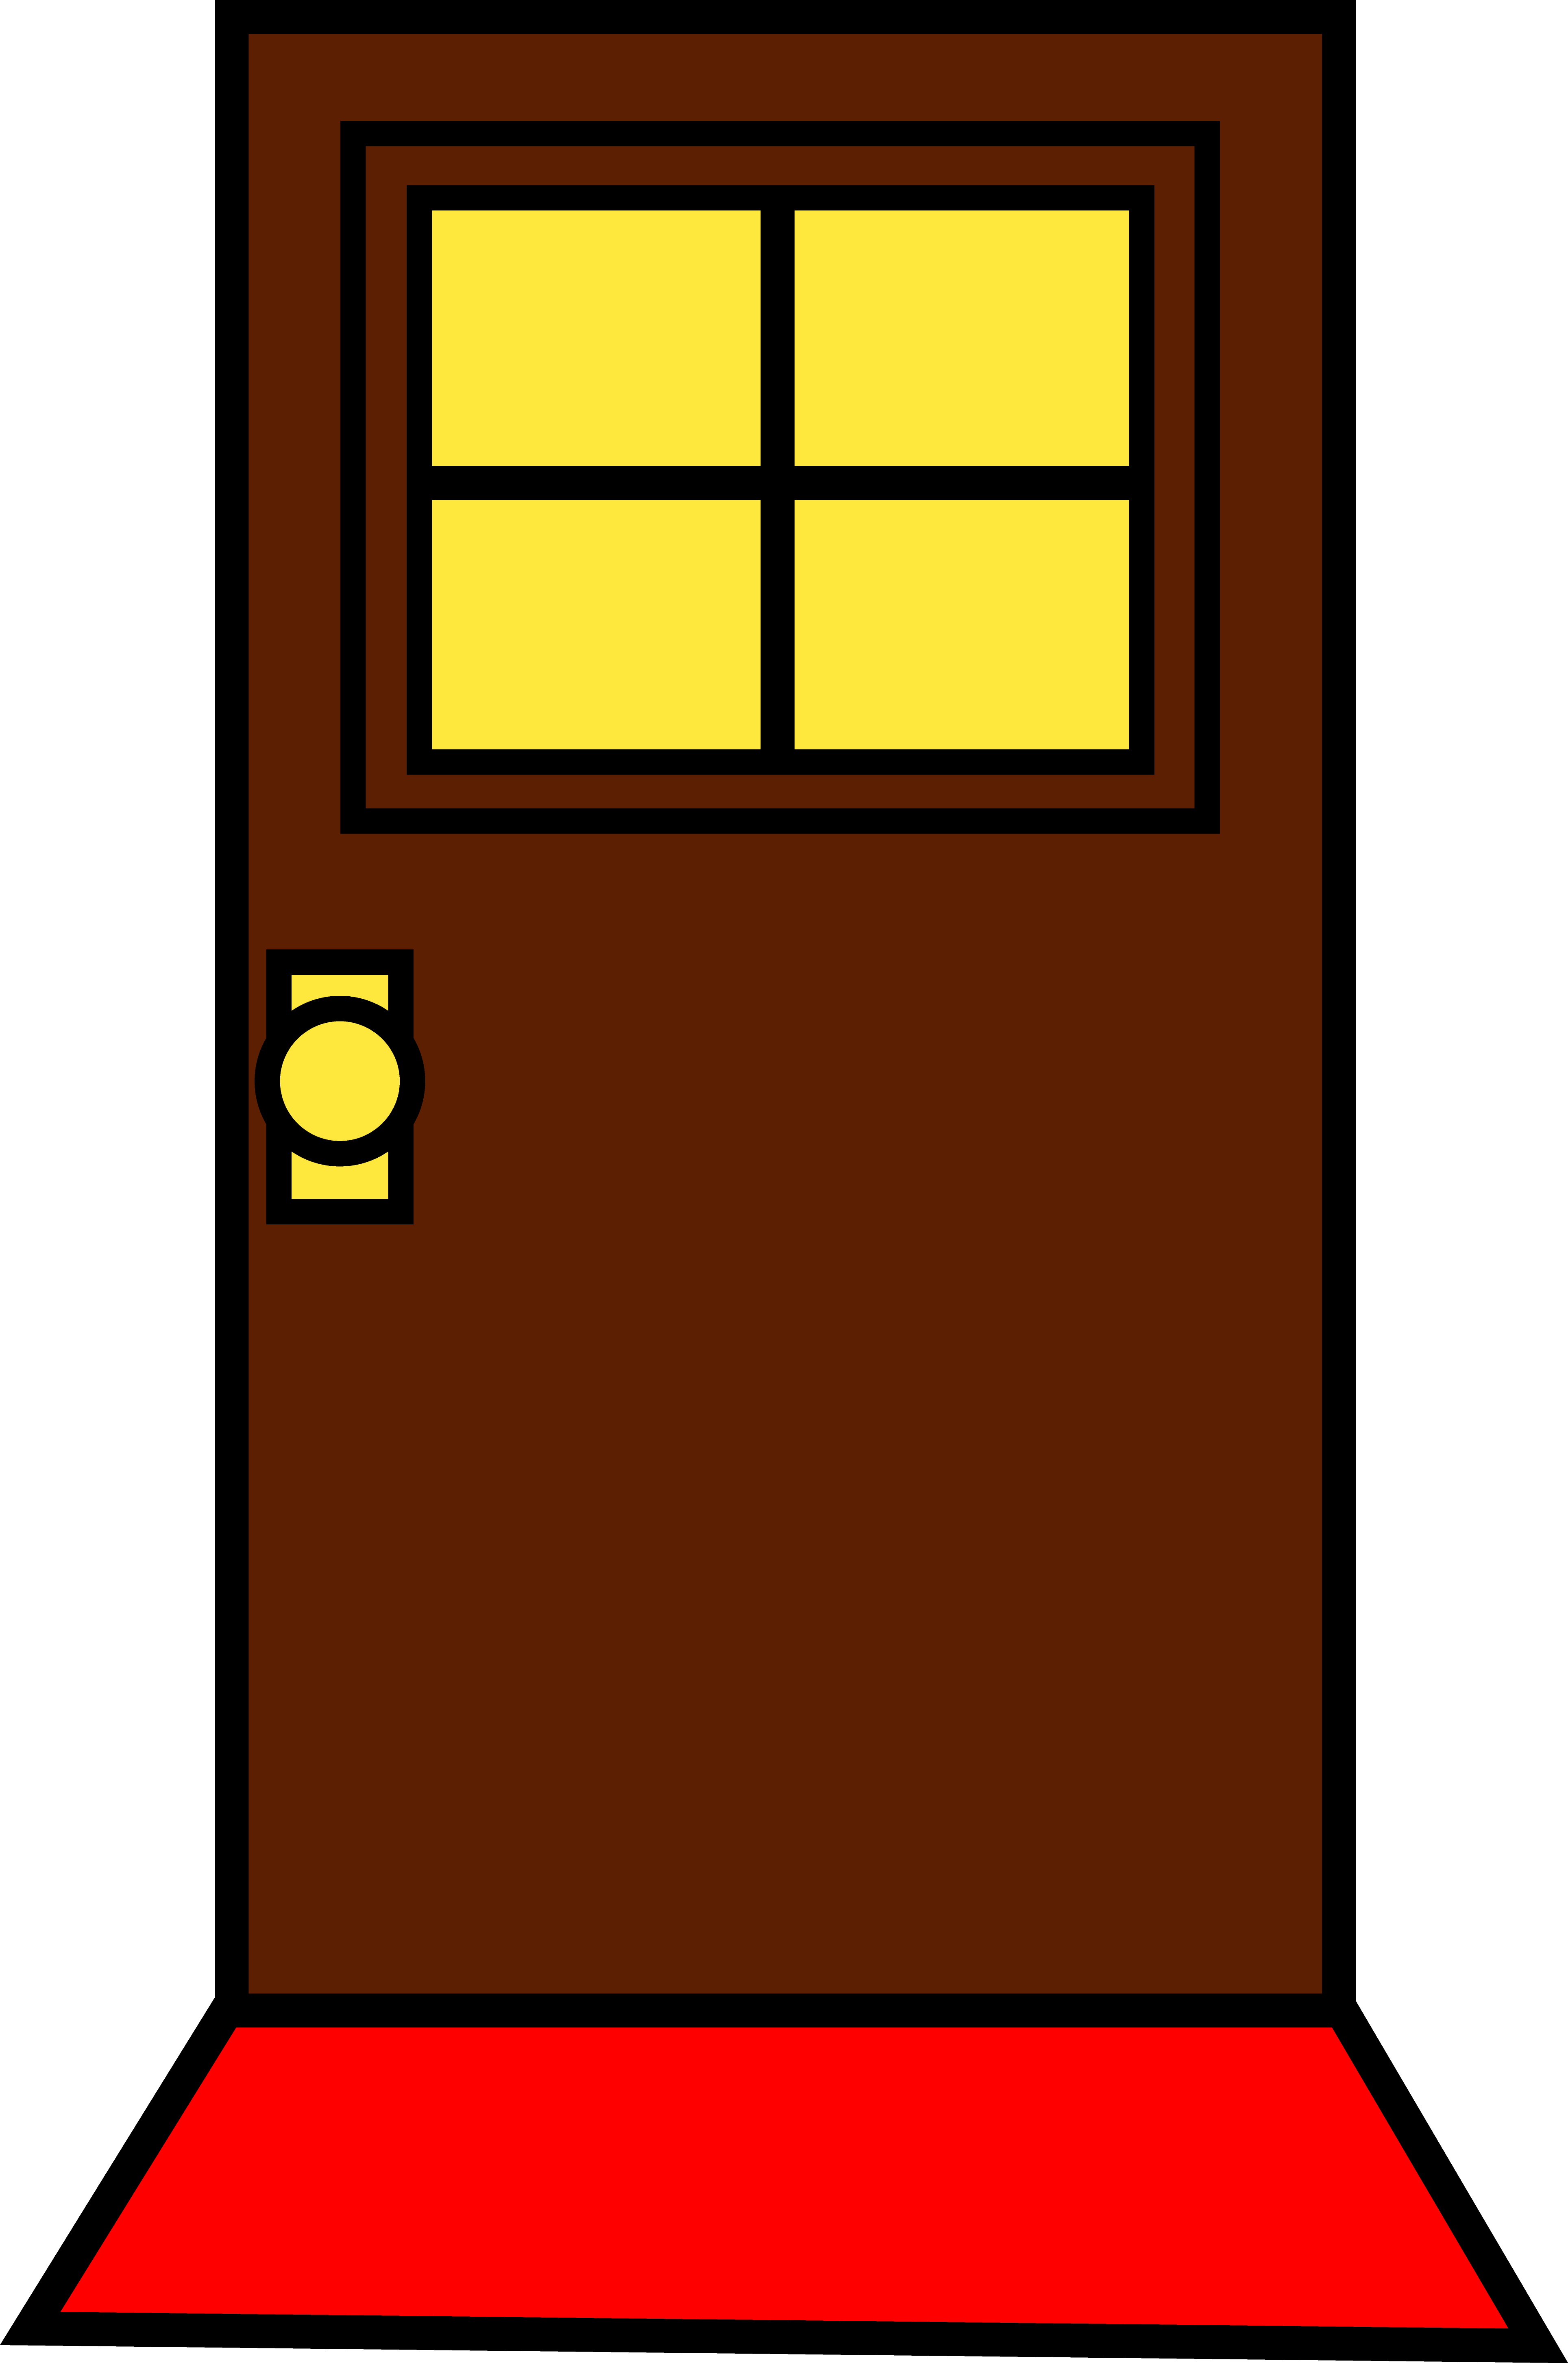 window clipart animated